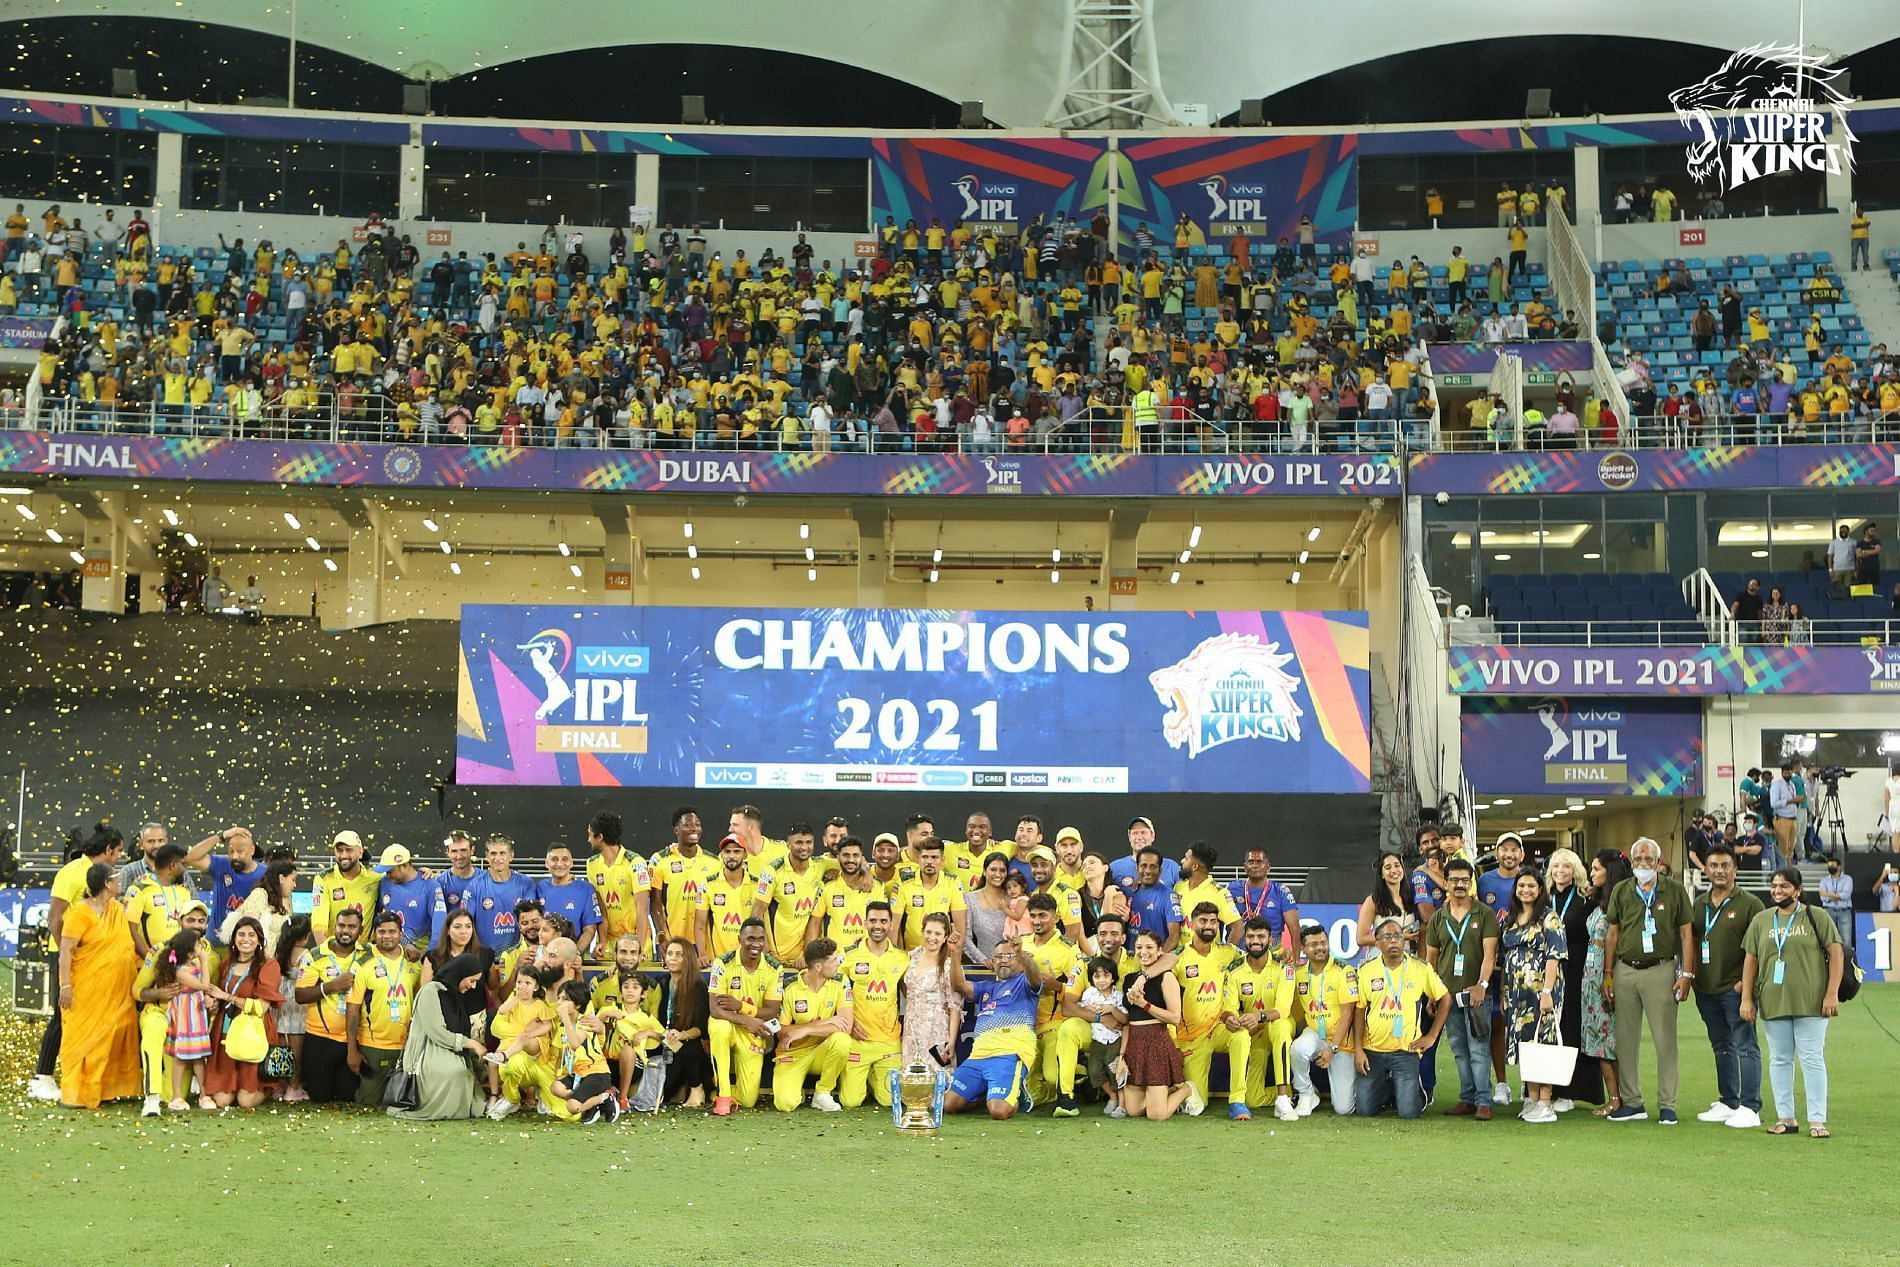 IPL 2021: [In Pics and Videos] Chennai Super Kings (CSK) celebrate after winning 4th title